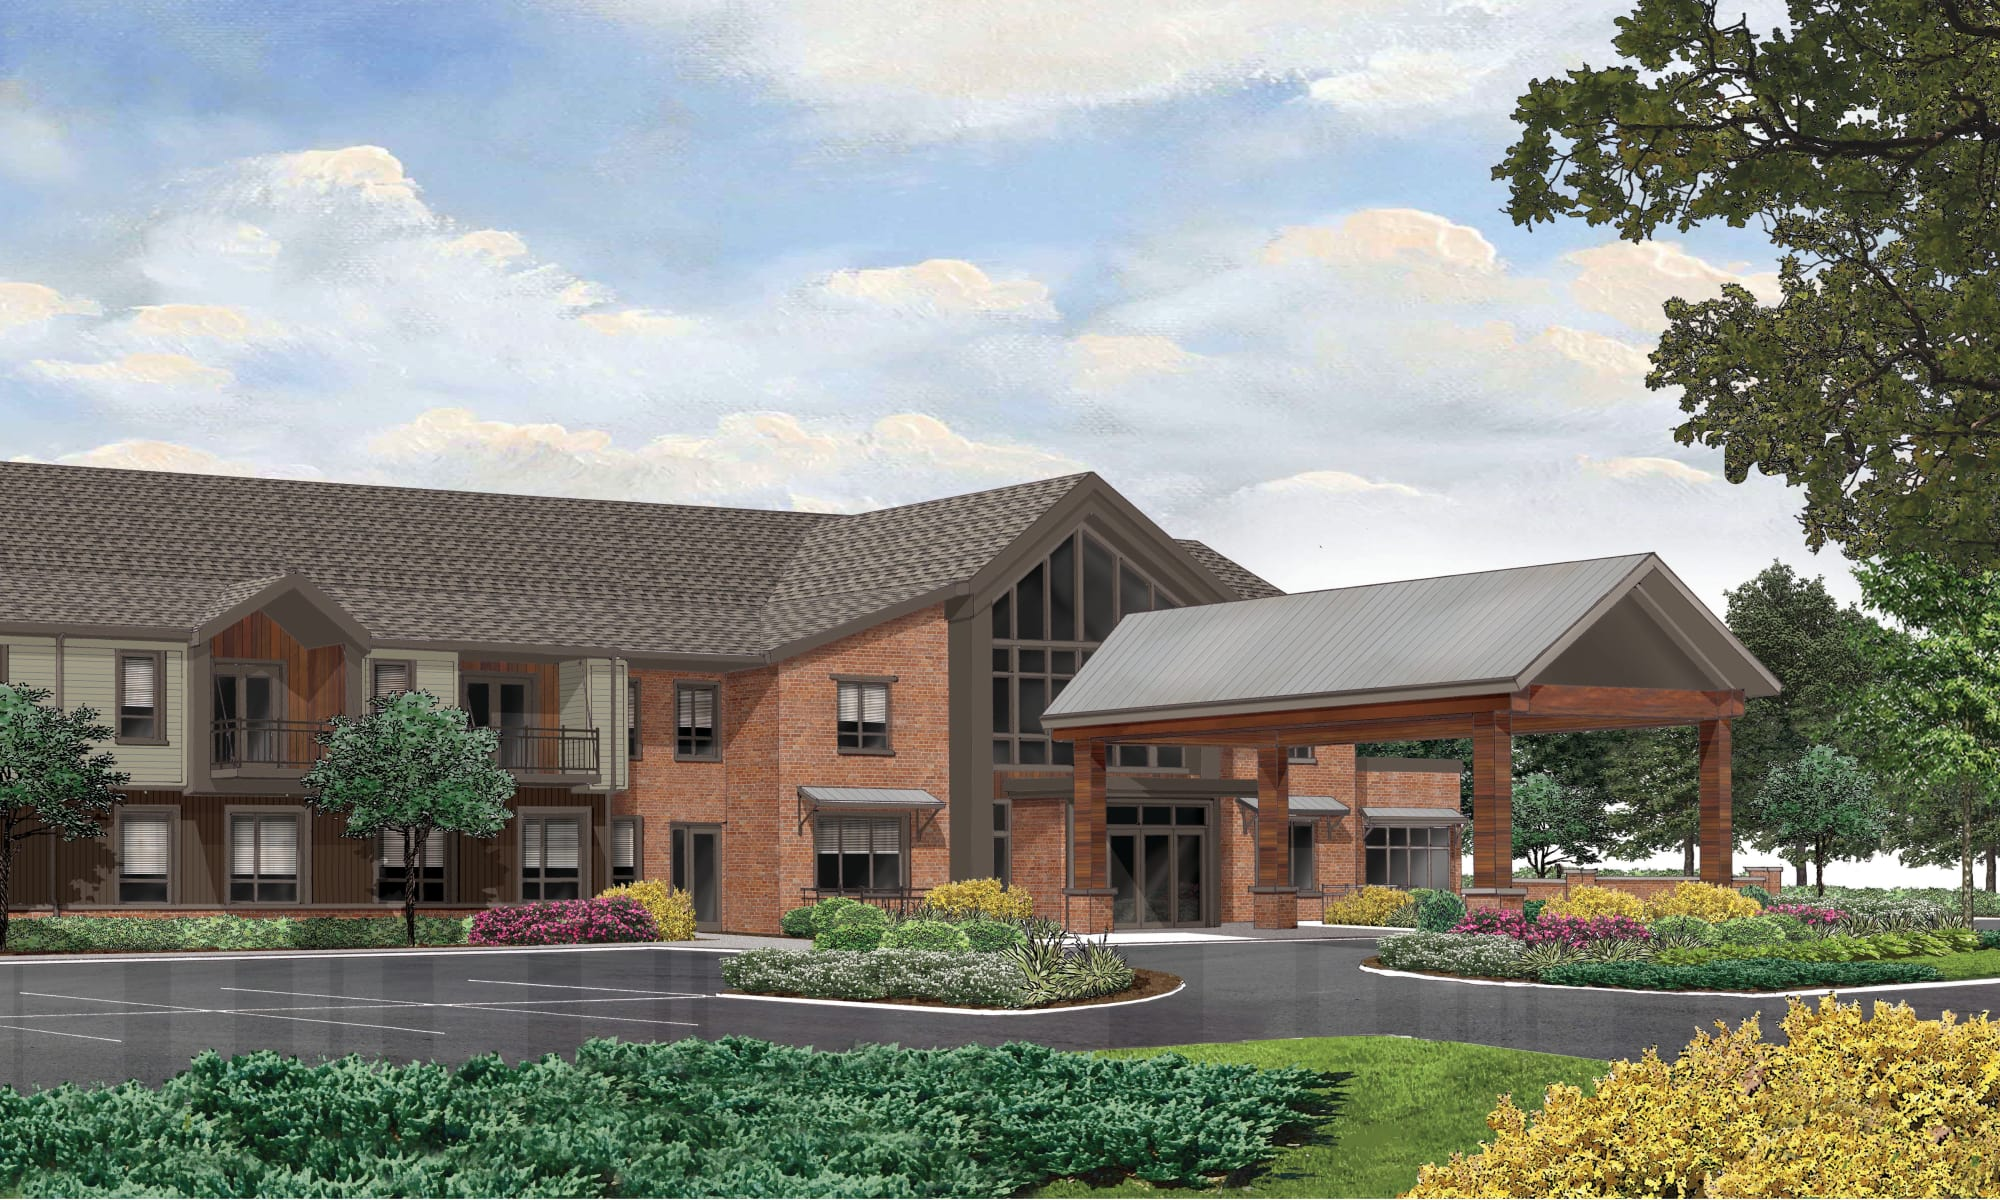 Exquisite senior living facility located in Beavercreek, Ohio